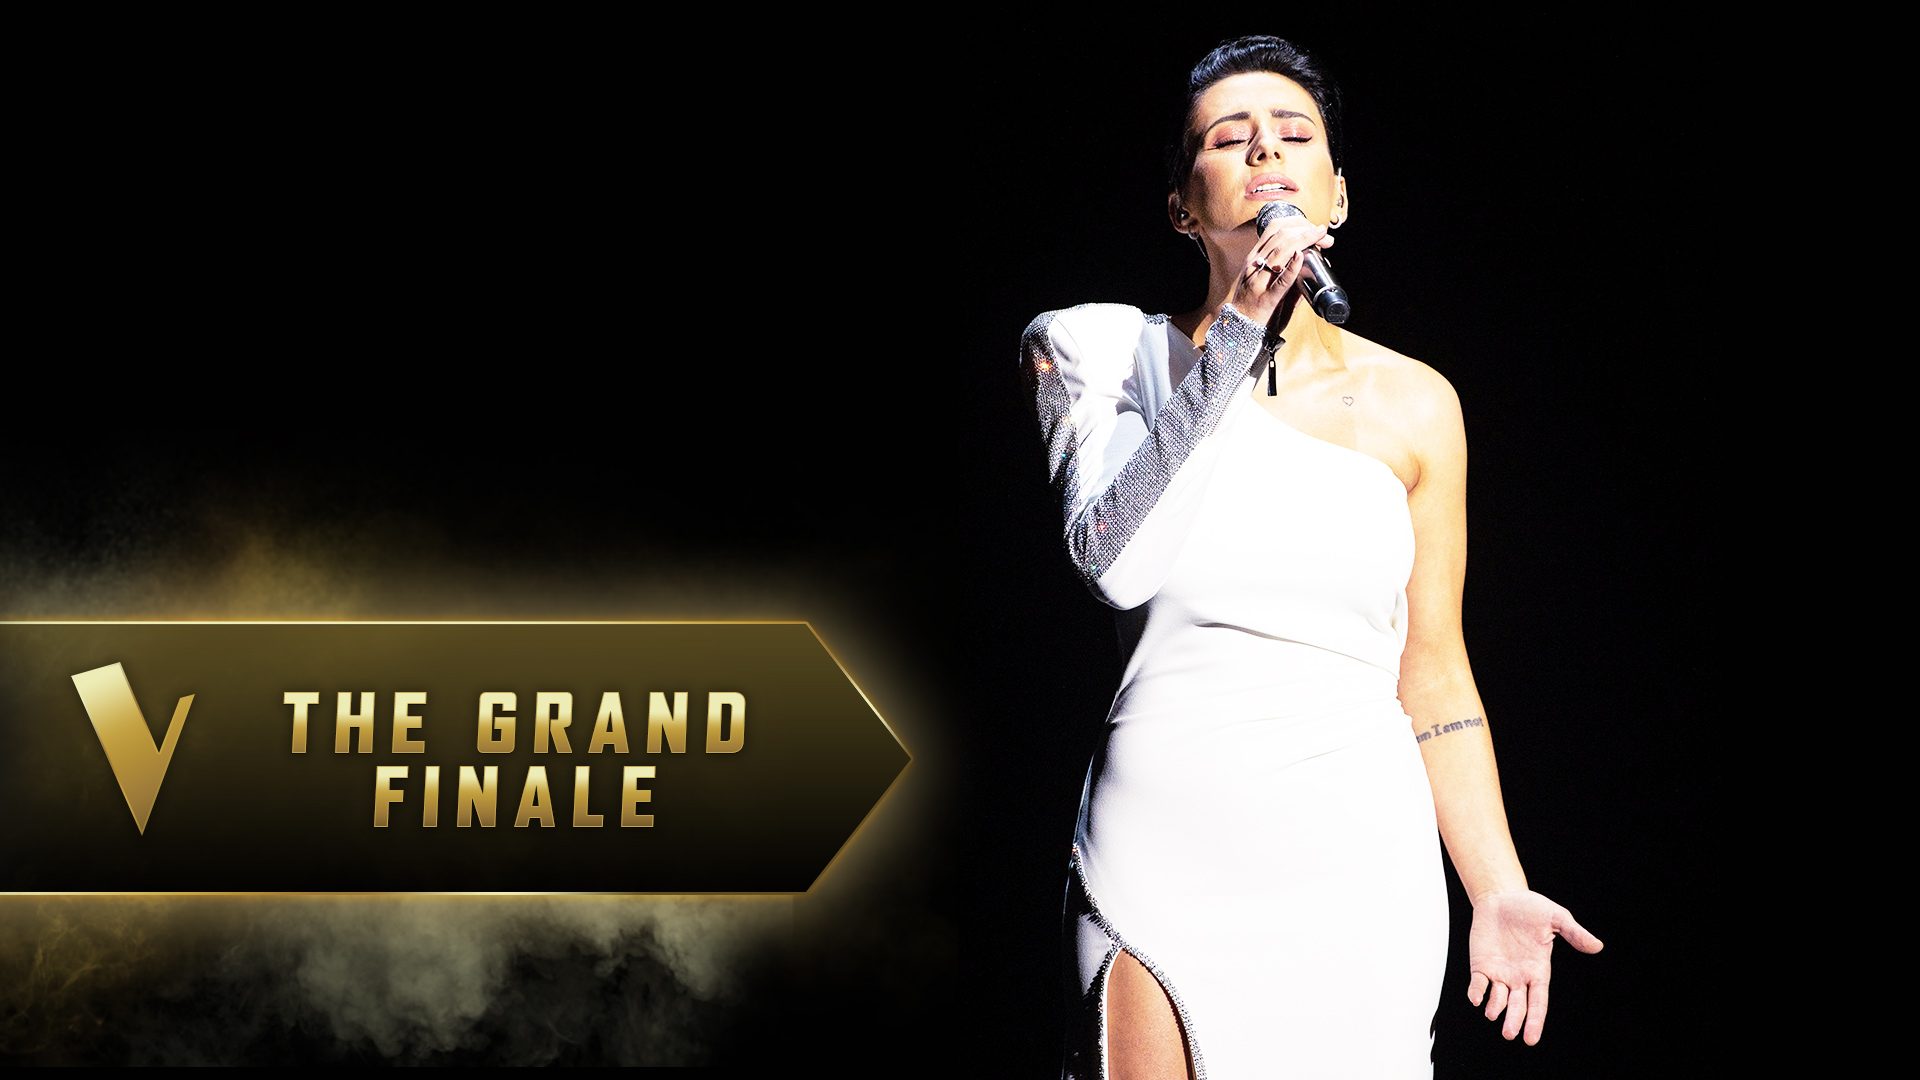 The Grand Finale: Diana Rouvas 'I Will Always Love You'